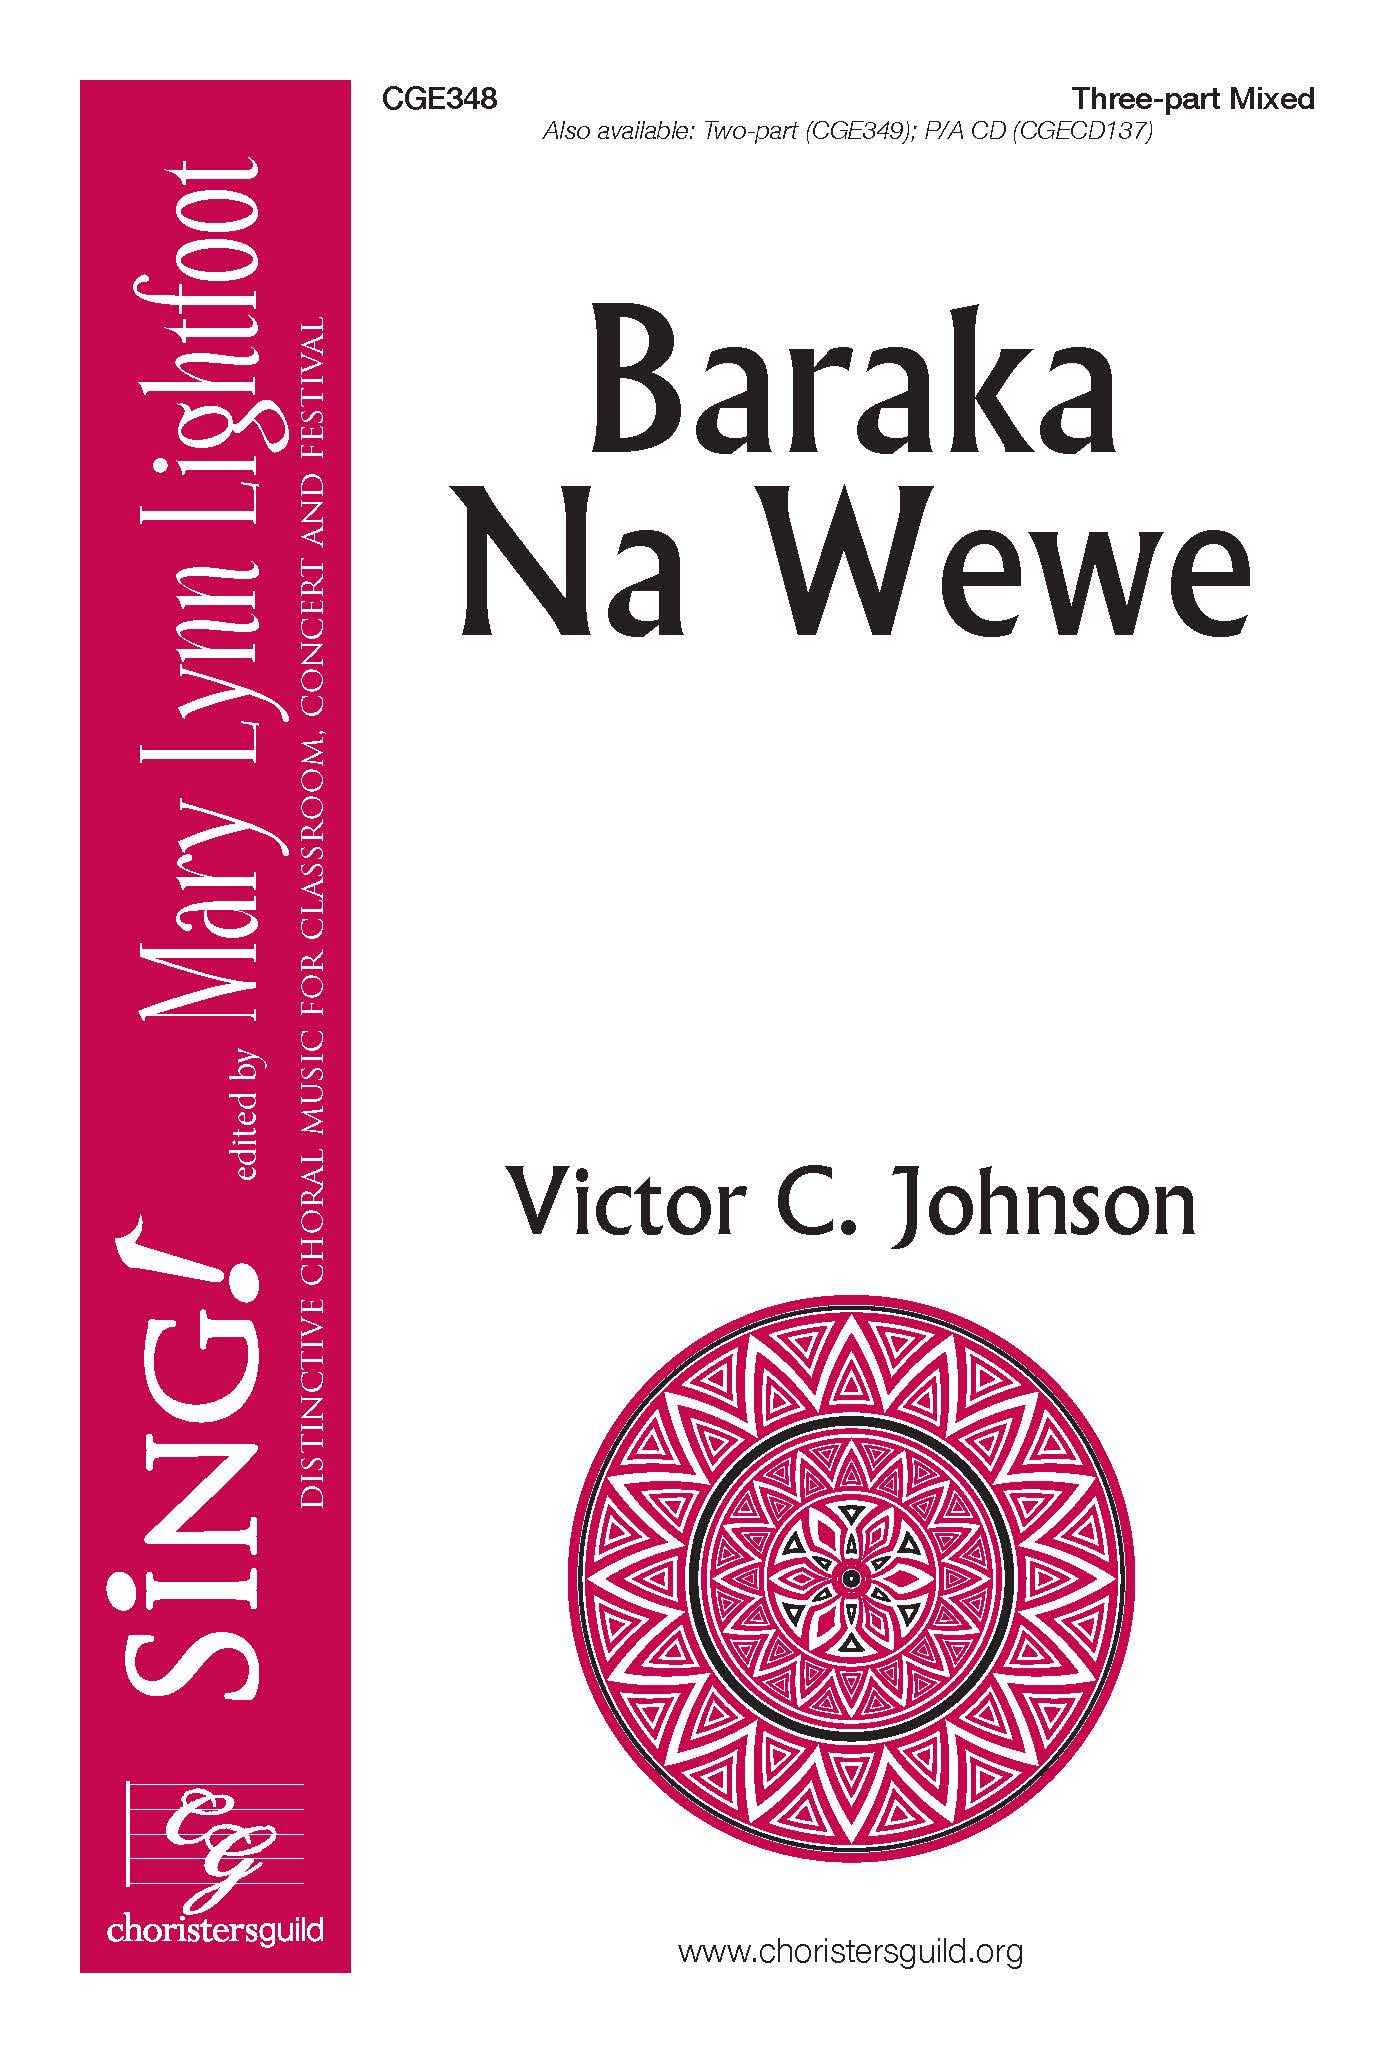 Baraka Na Wewe - Three-part Mixed